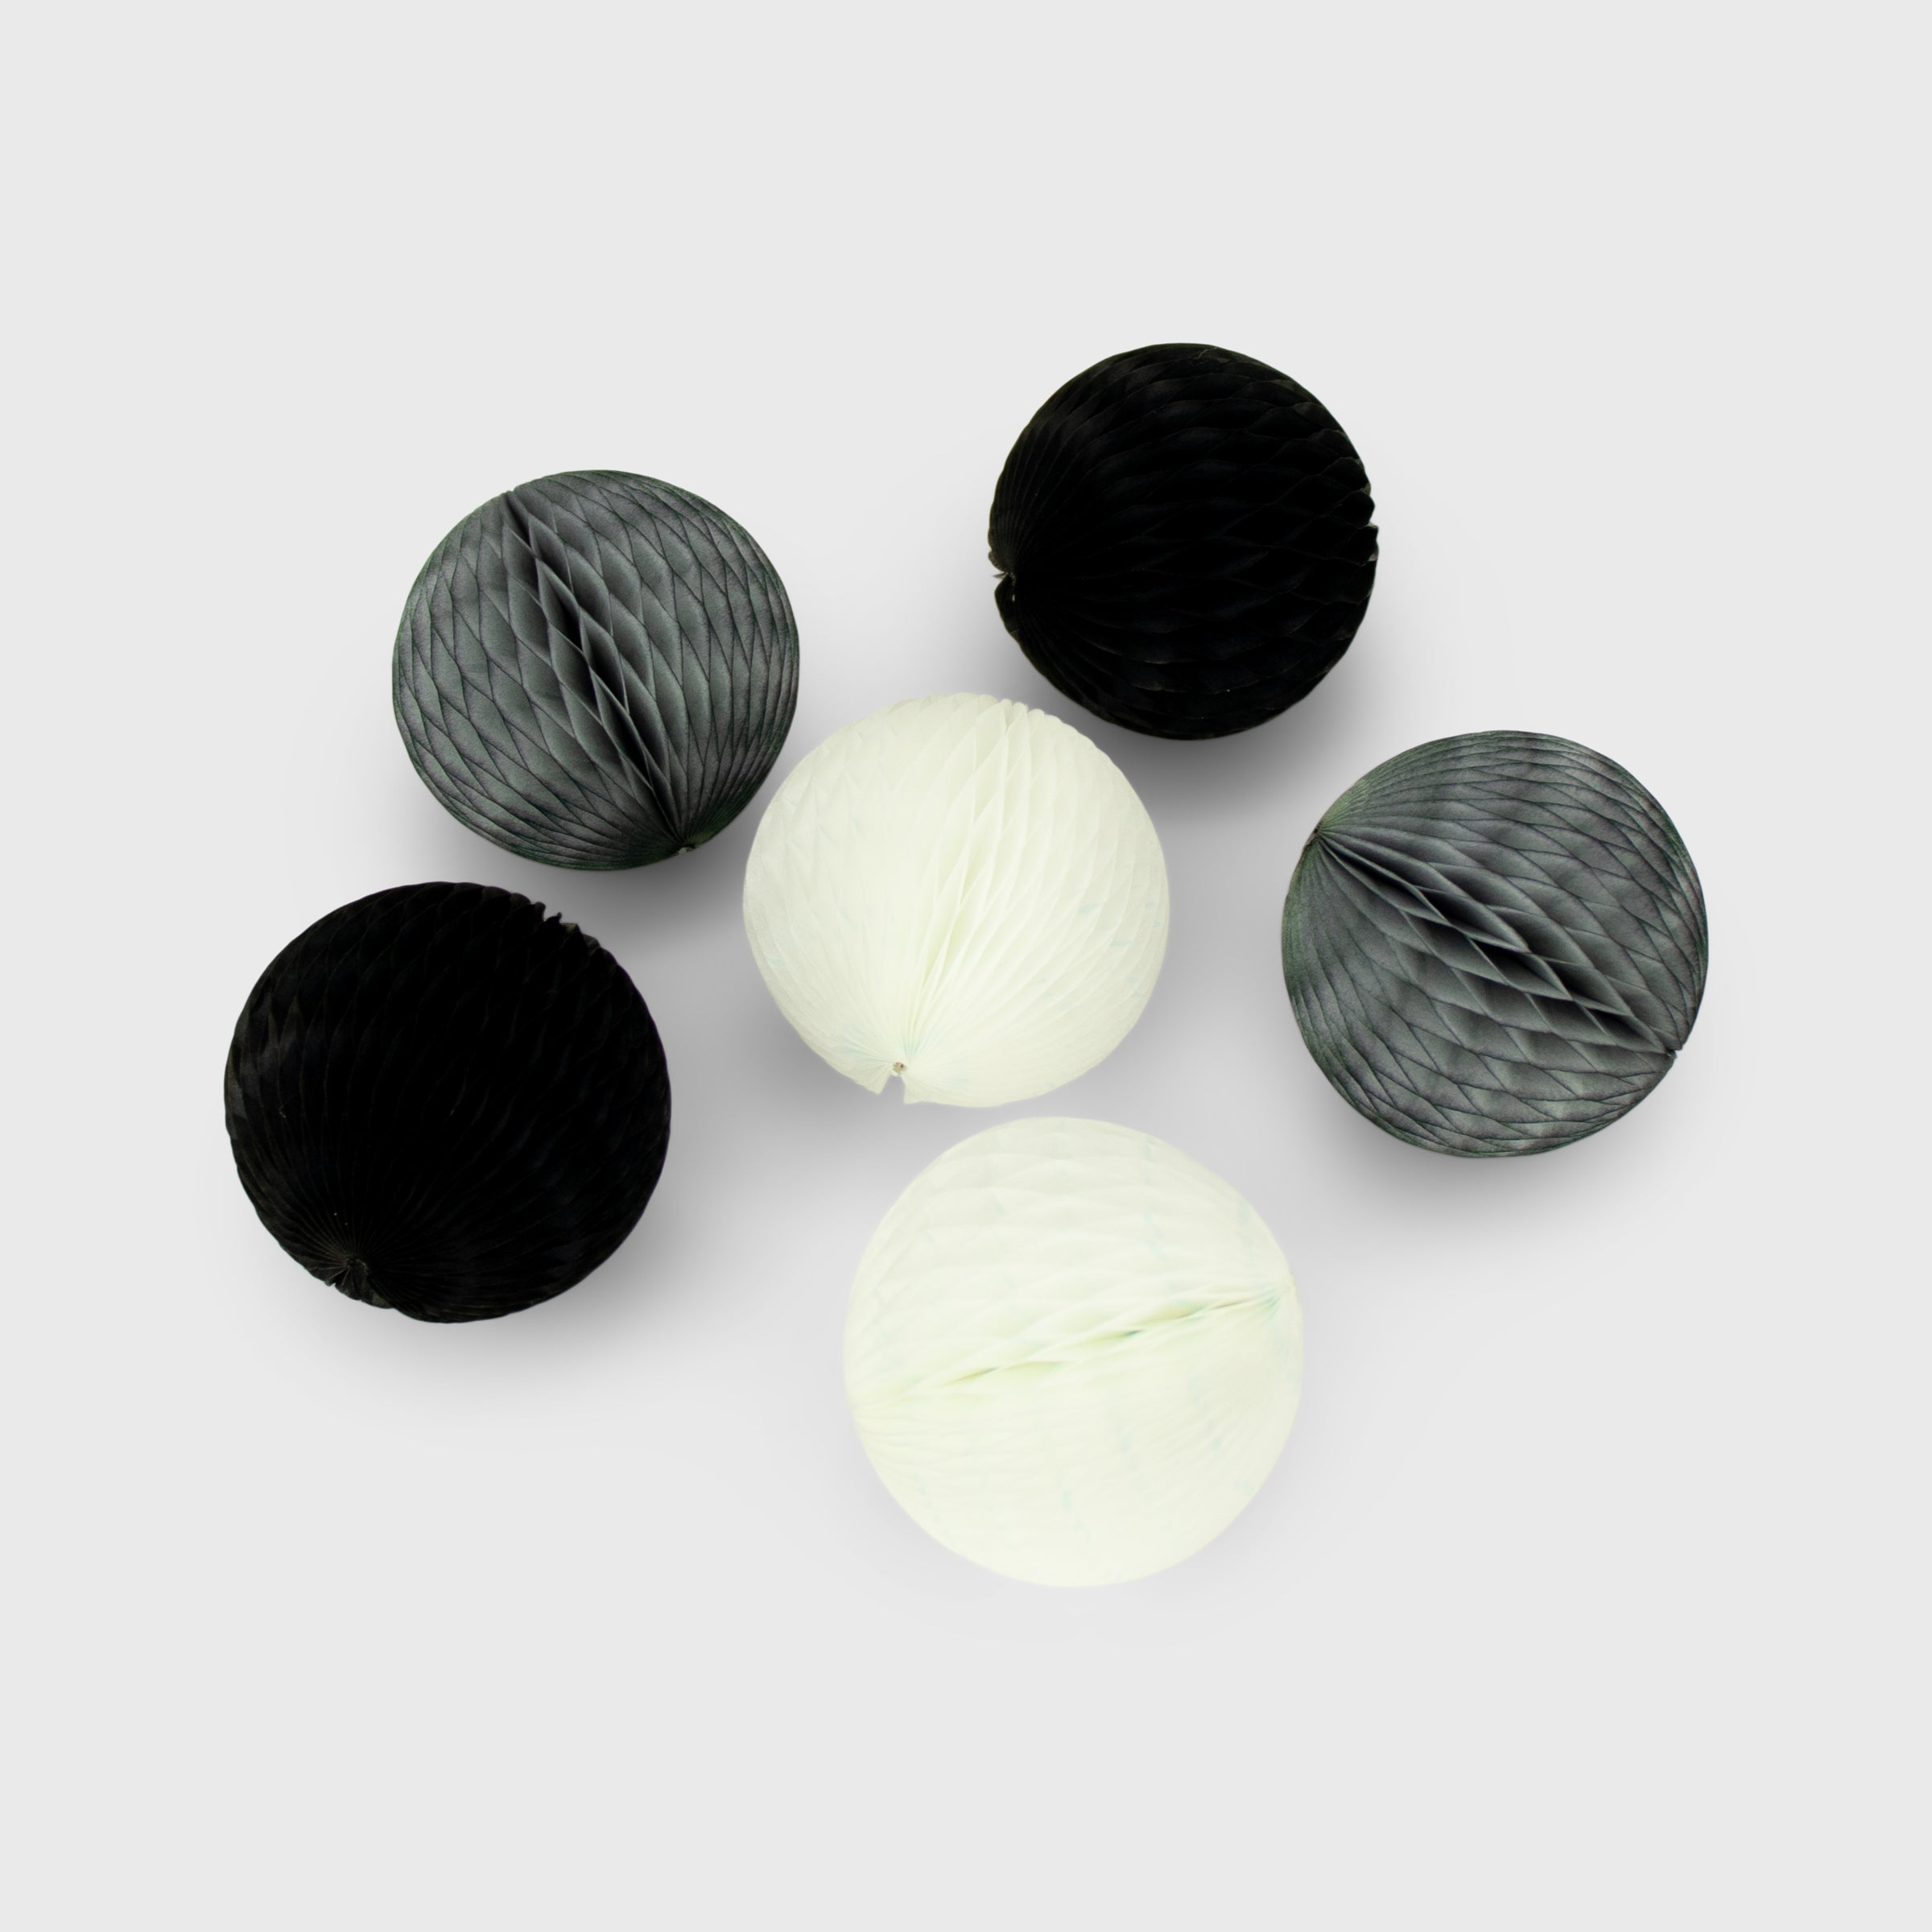 Honeycomb Ball 5cm Pack of 6, Monochrome